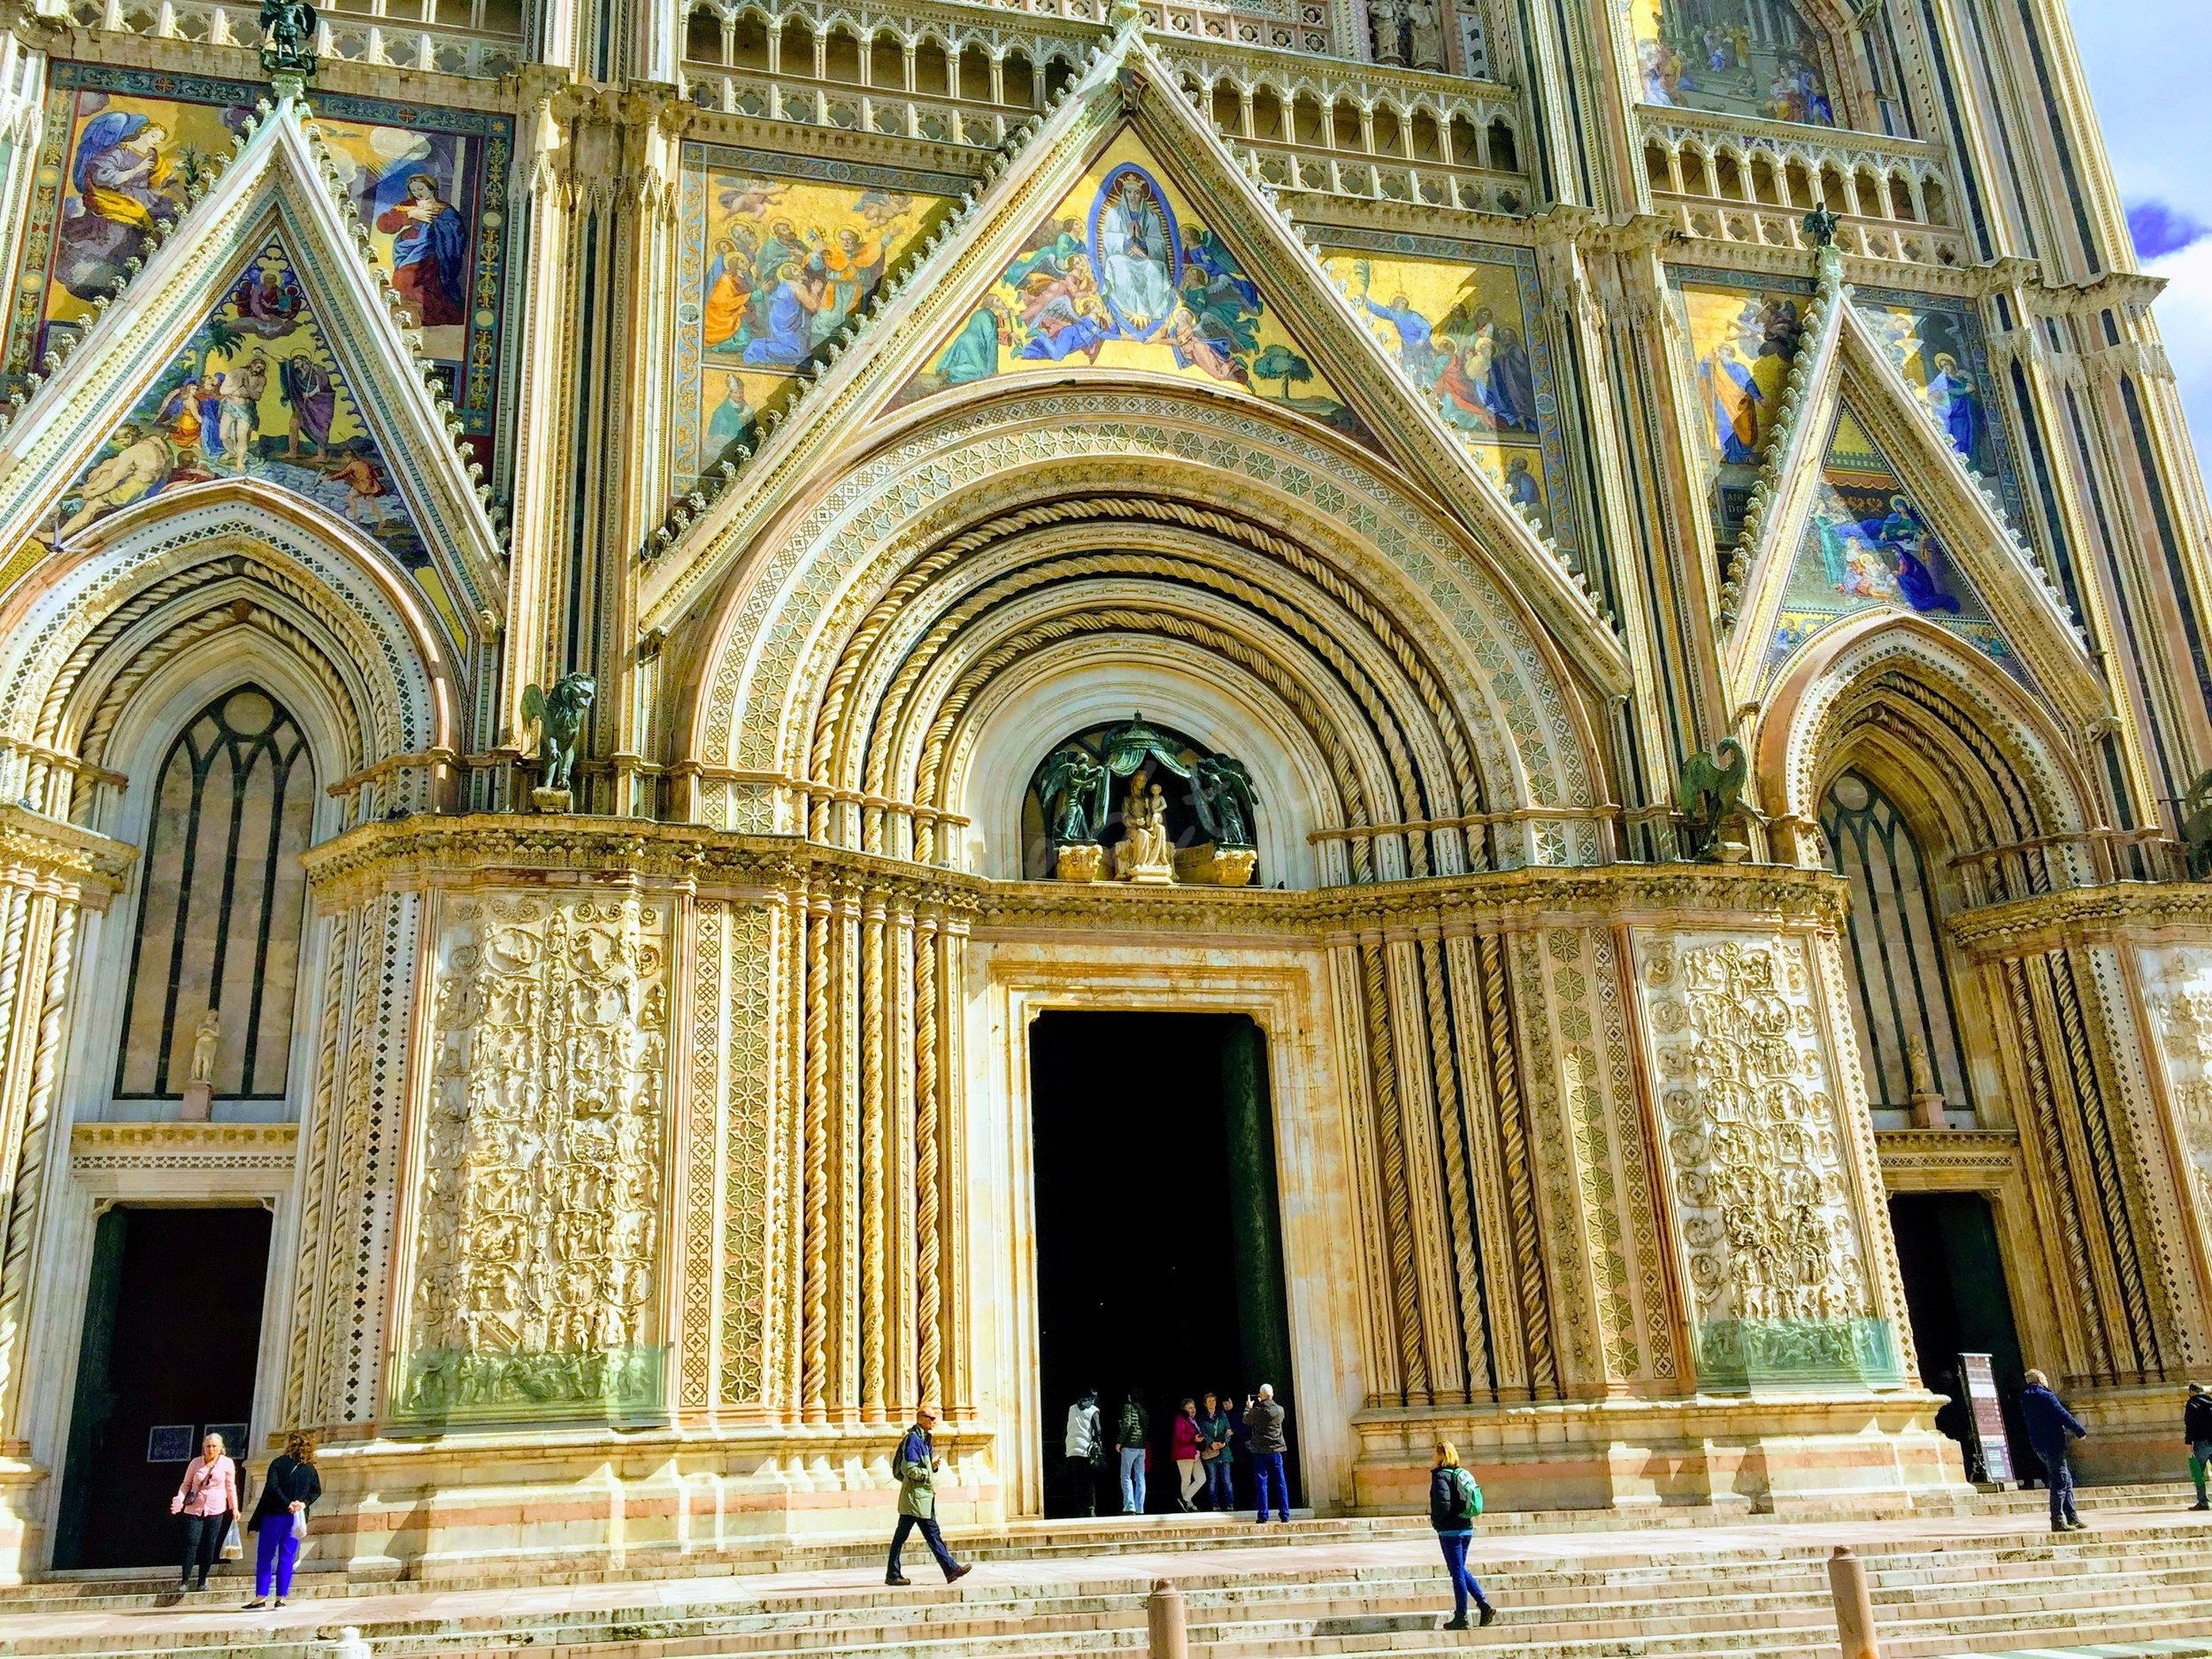 The duomo's facade is one of the most colorful and intricate i have seen to date.